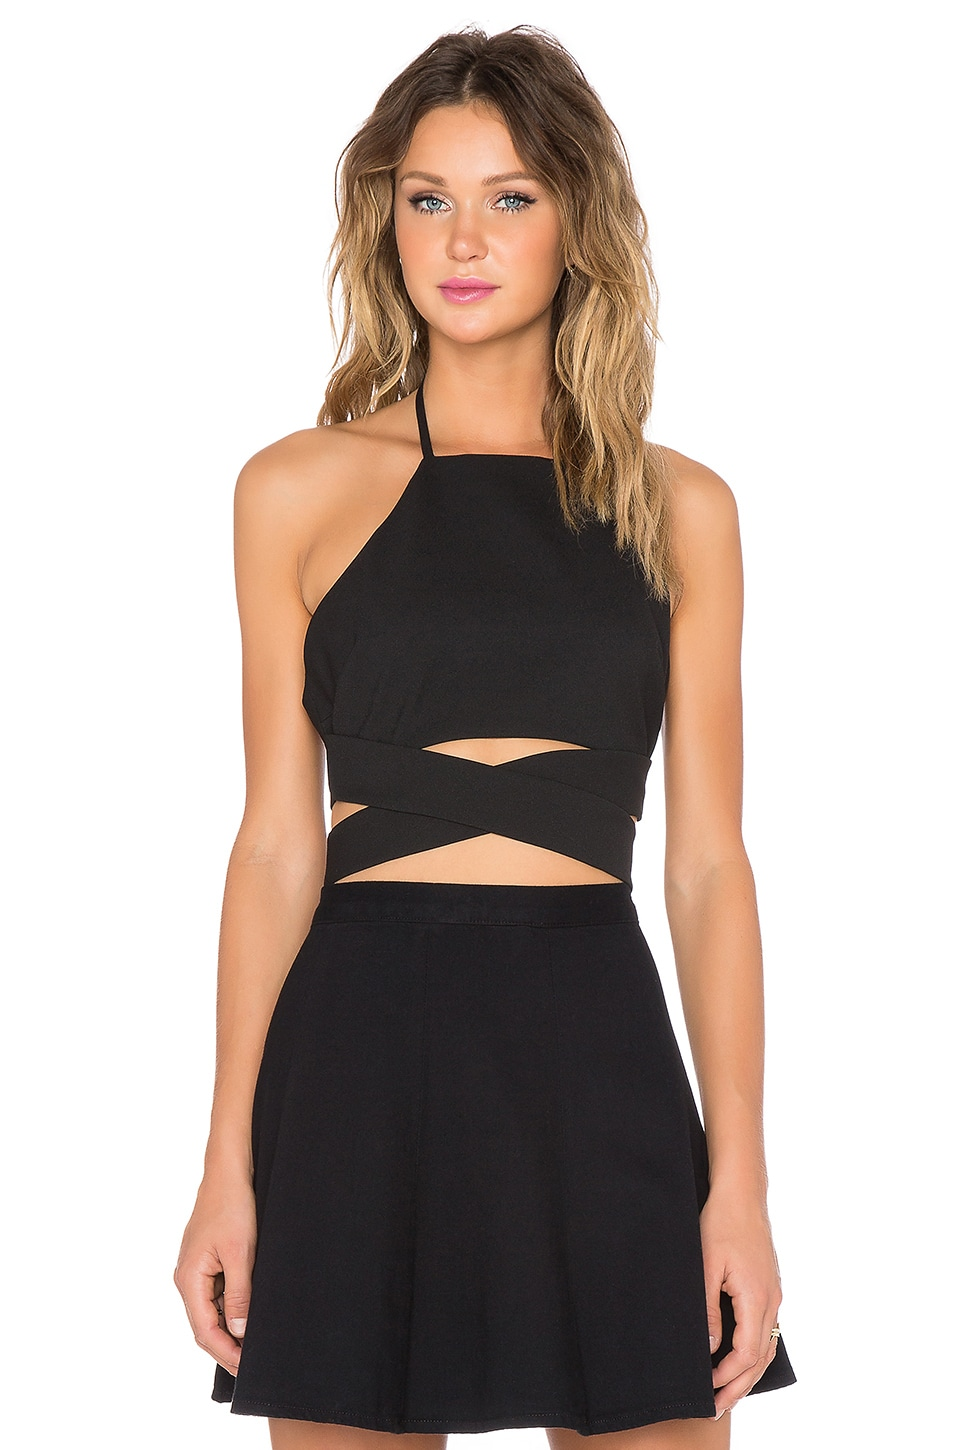 Lovers + Friends x REVOLVE Double Cross Crop Top in Black